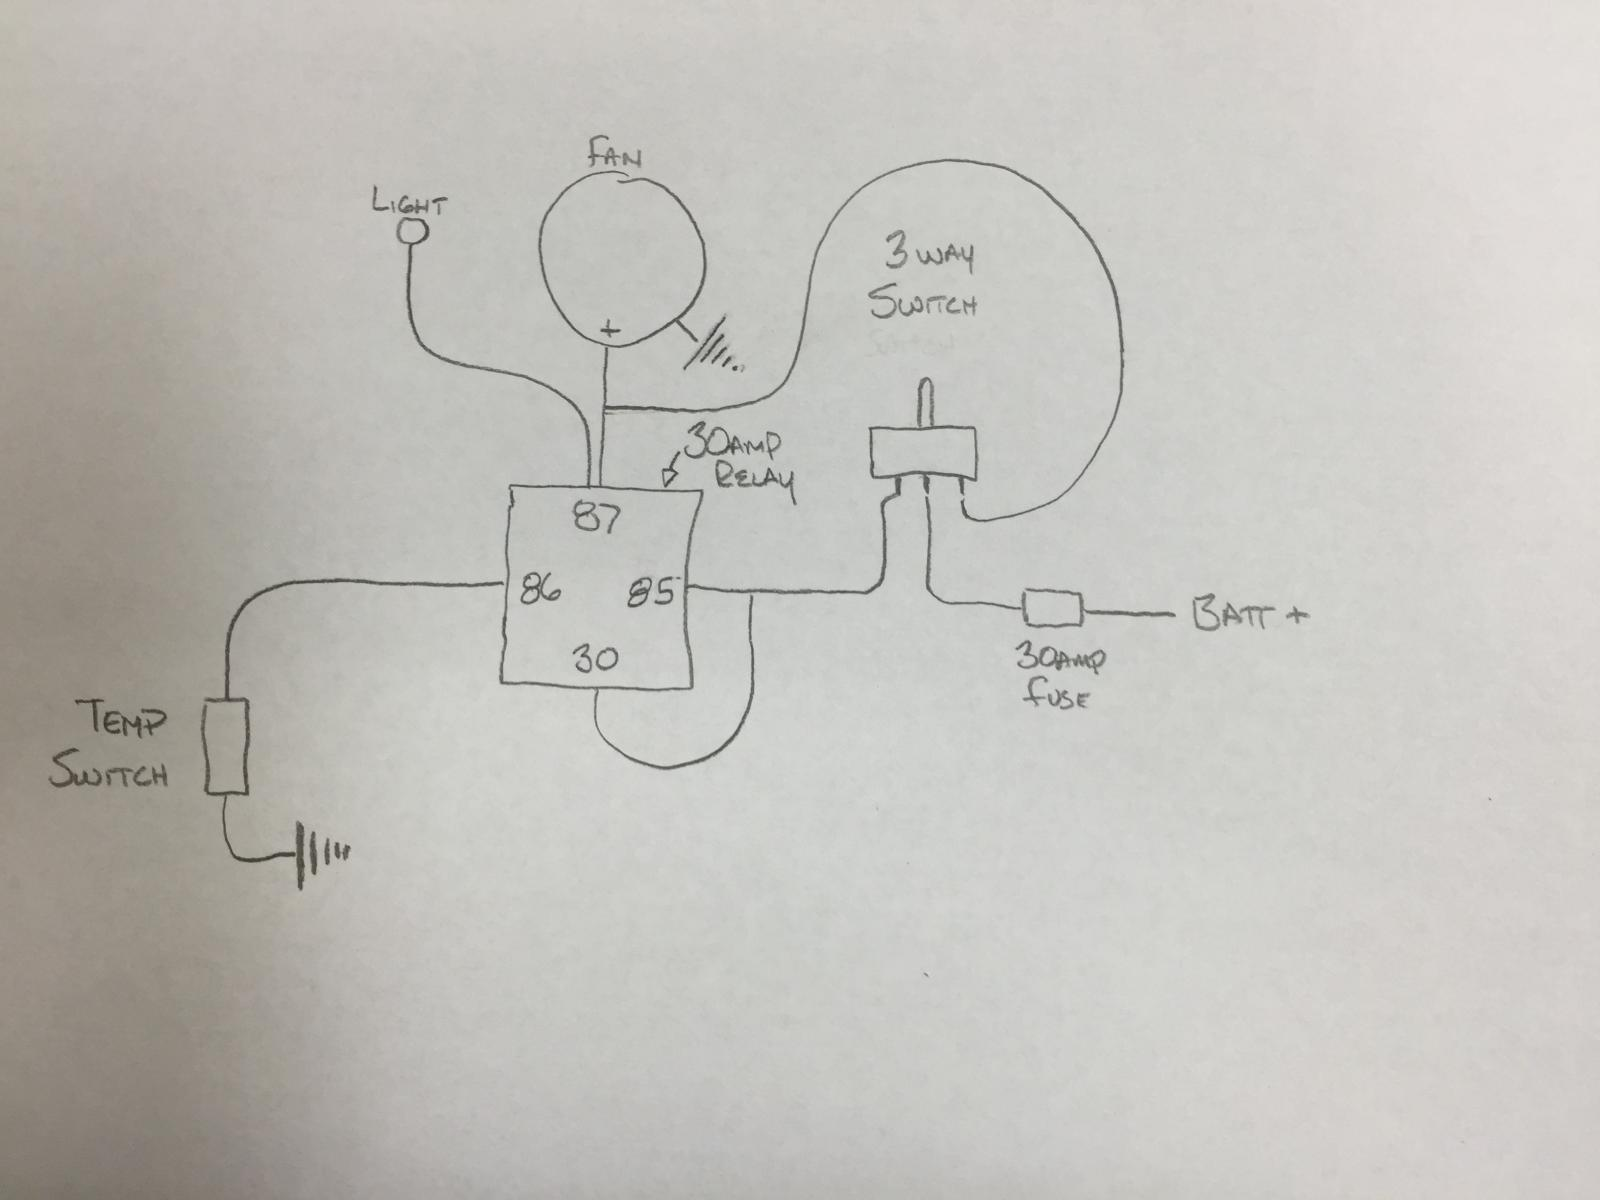 Oil Cooler Fan Wiring Diagram Free For You Evaporative Fuse Box Connection Bass Schematics Swamp Switch